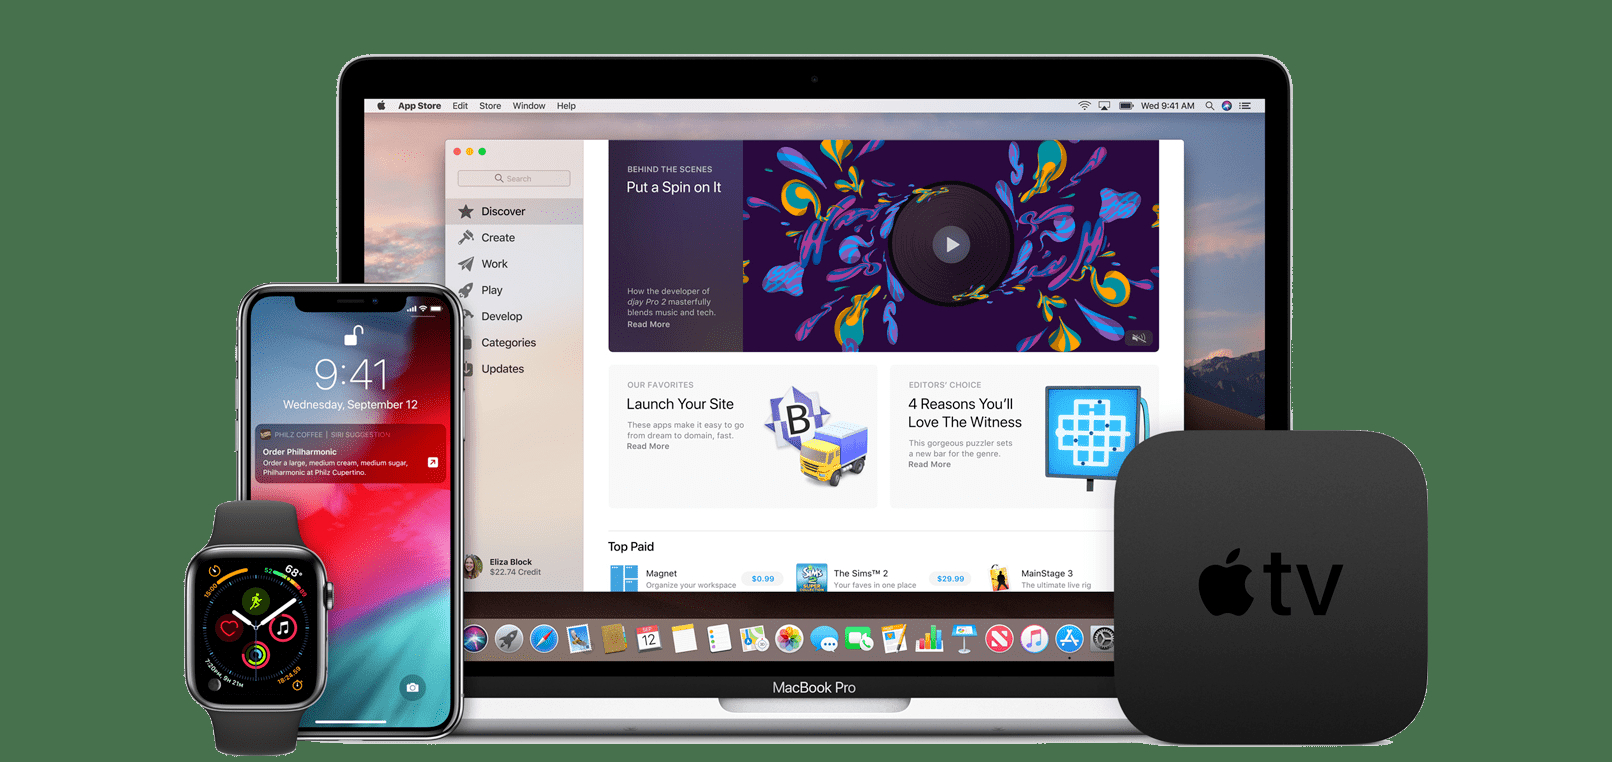 Apple ios/Mac/WatchOS/TVOS 描述文件获取